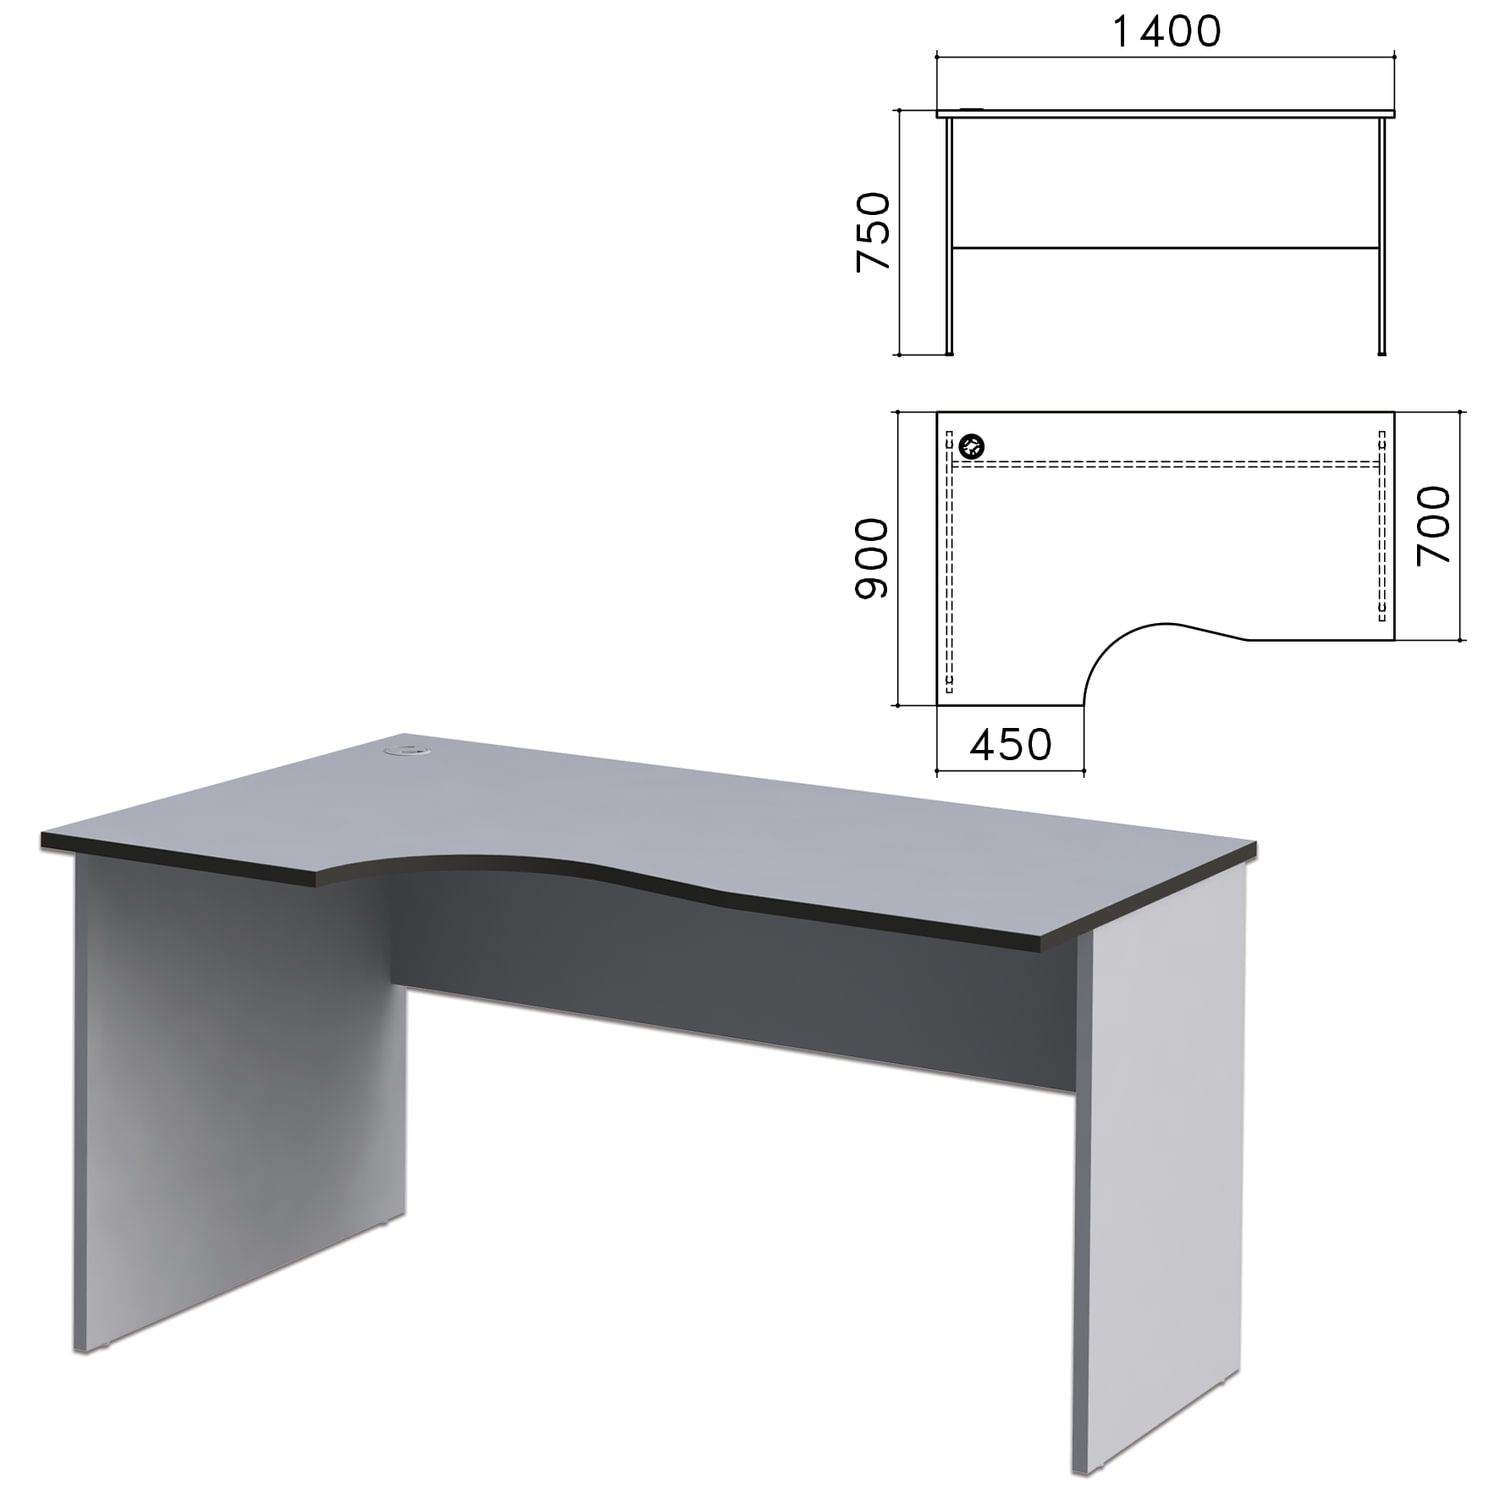 "Table written ergonomic ""Monolith,"" 1400s900s750 mm, left, gray color"